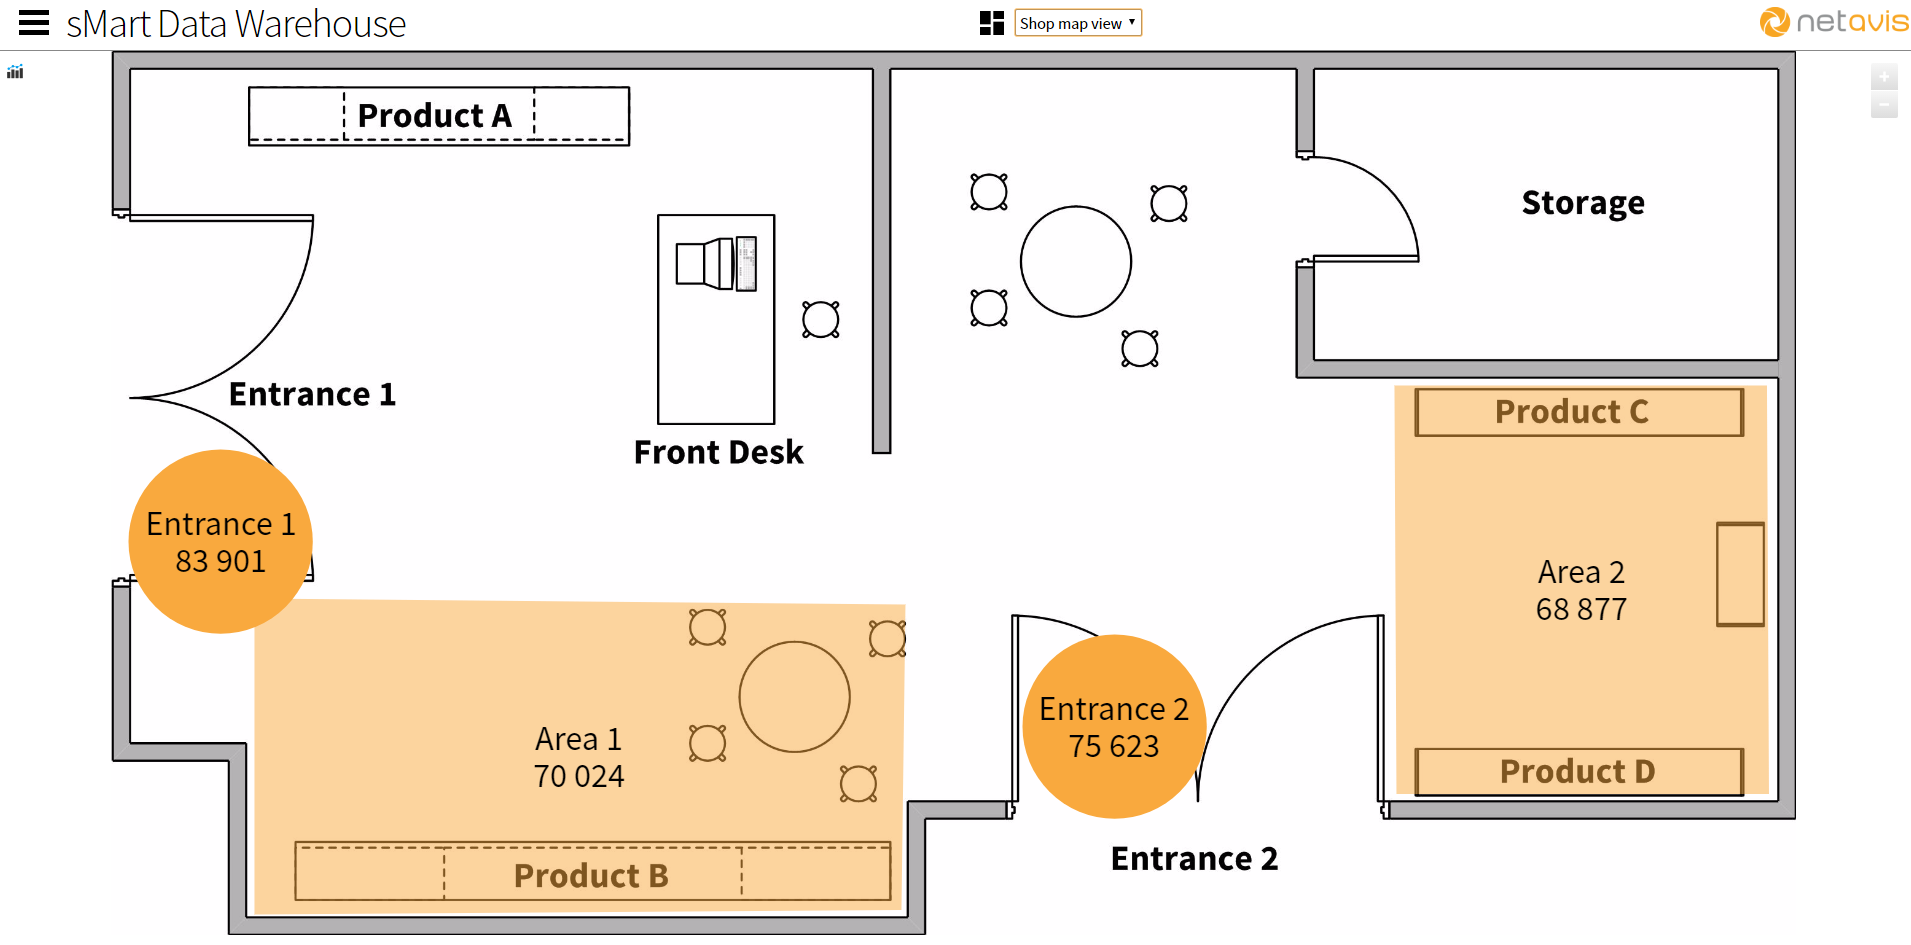 sMart Dashboard Floor Plan2 EN